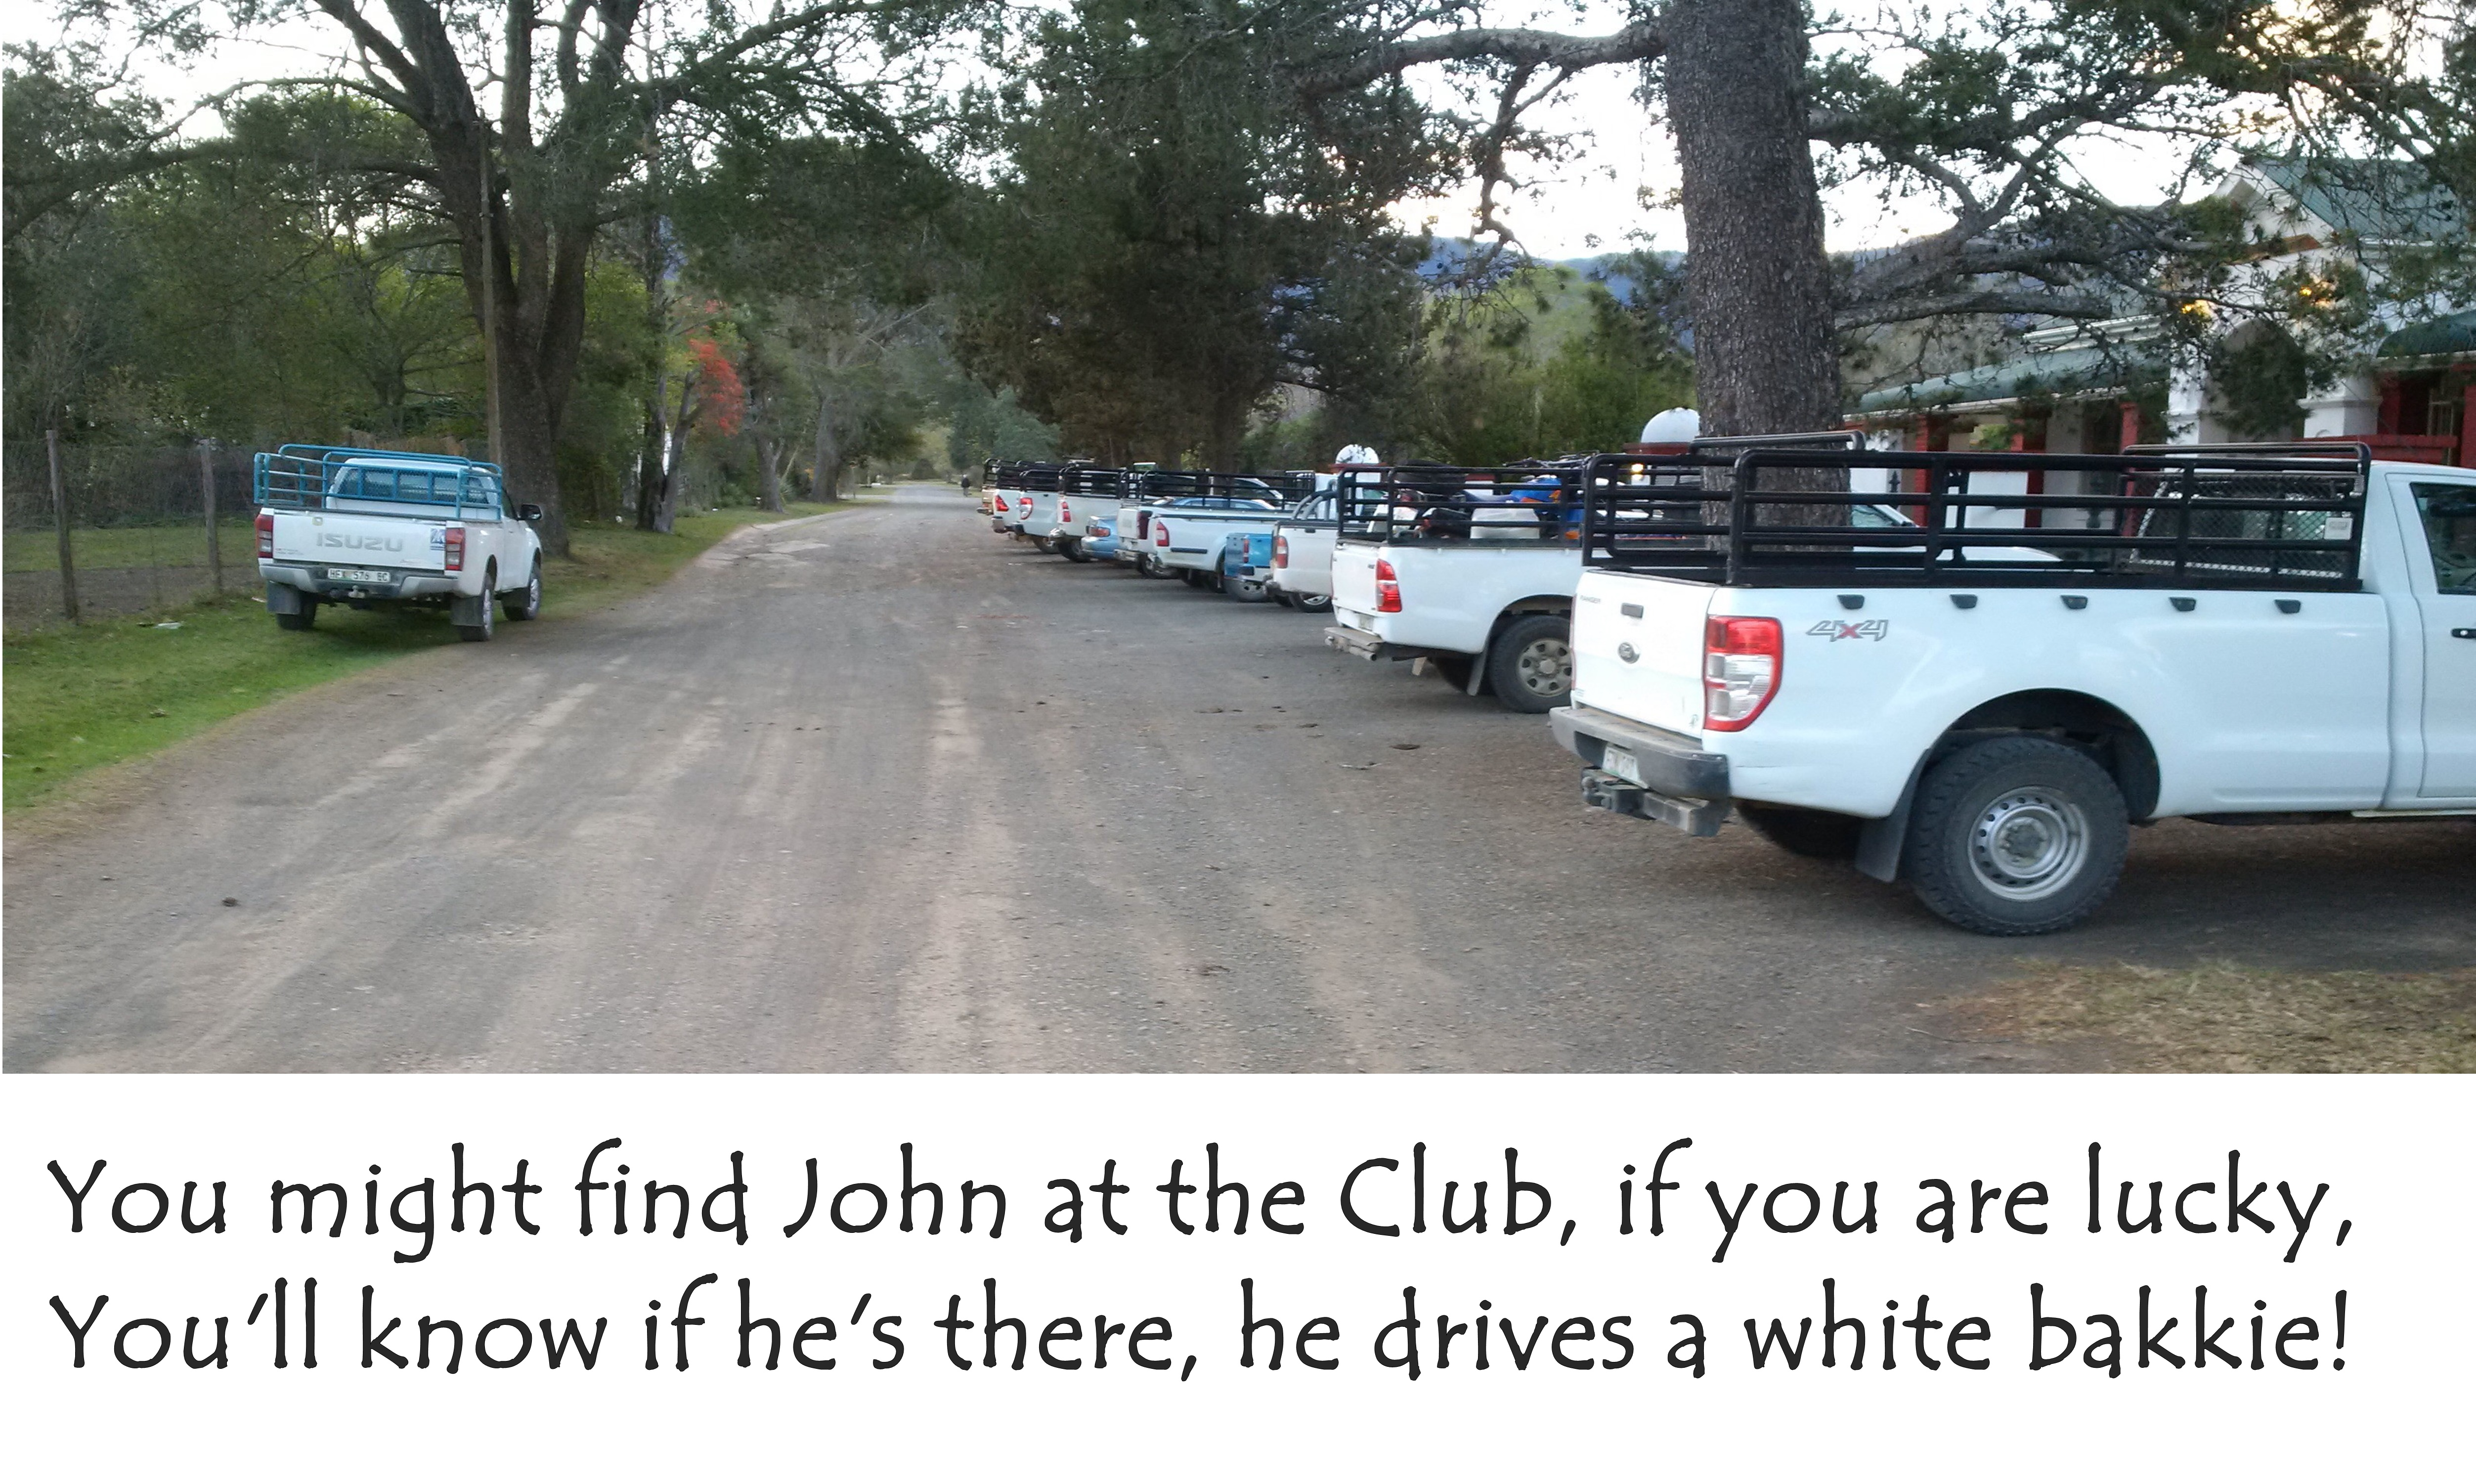 tootg-white-bakkies-at-the-club